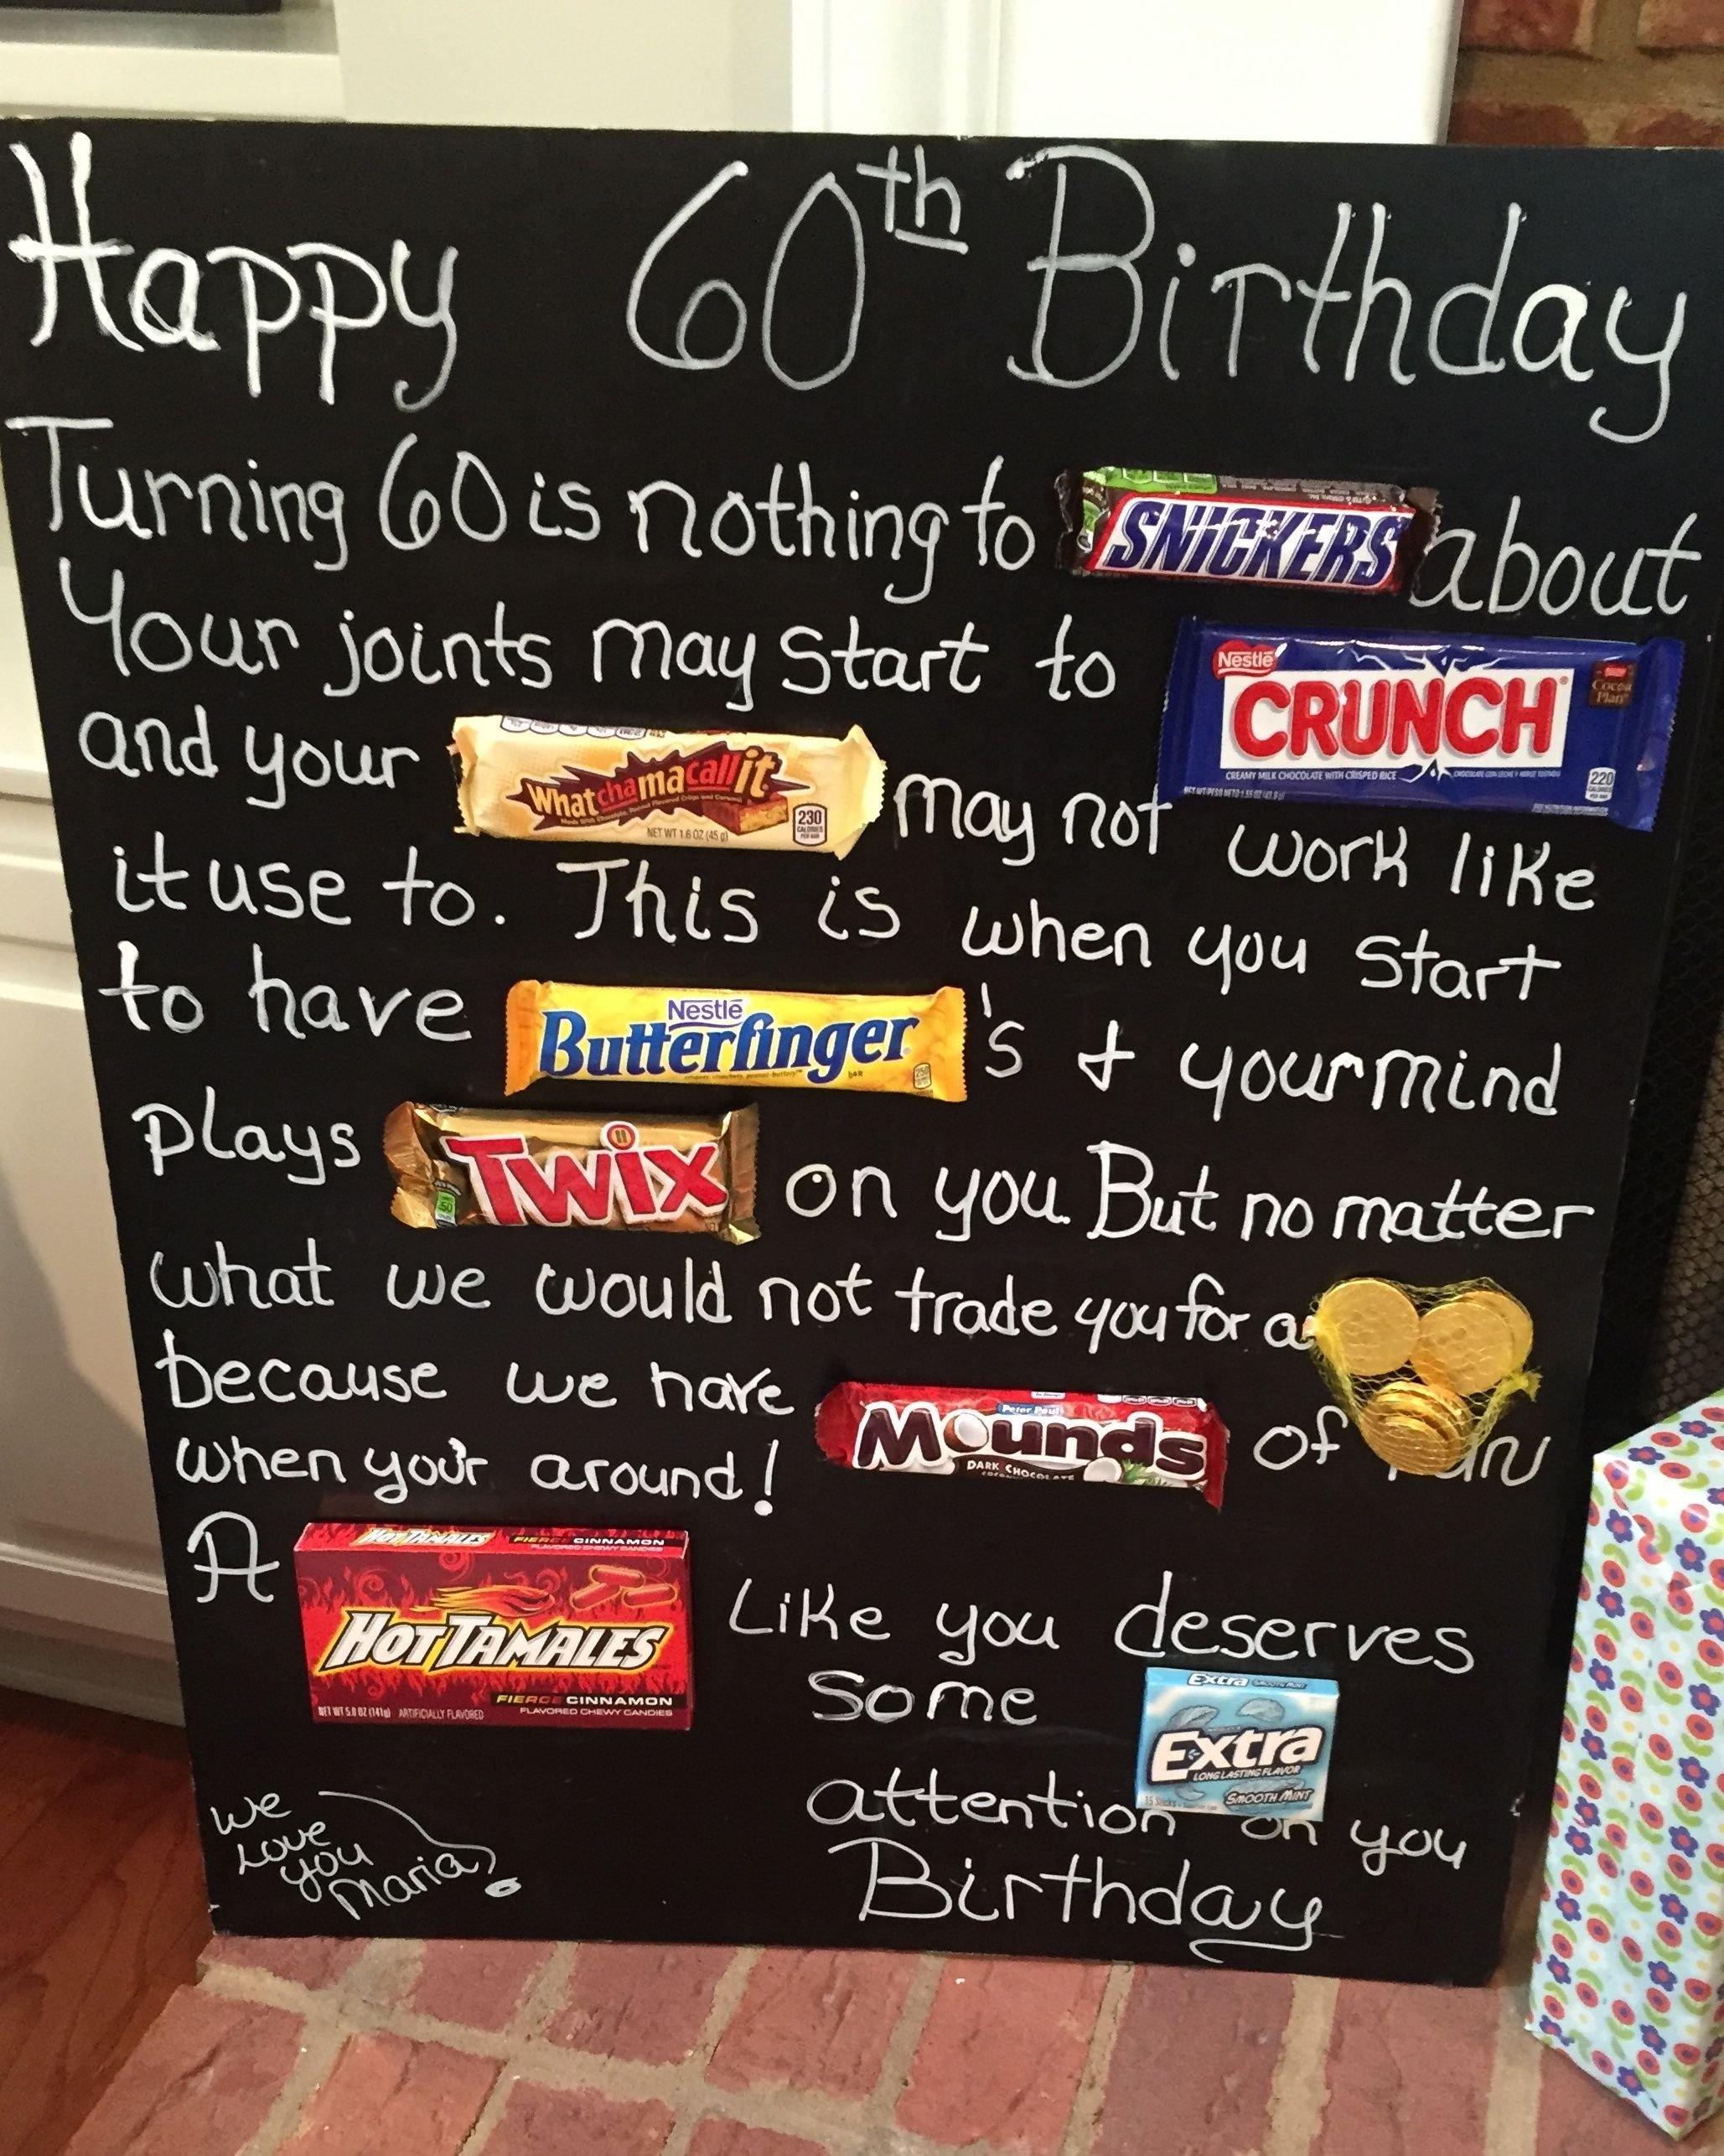 10 Wonderful Mom 60Th Birthday Gift Ideas old age over the hill 60th birthday card poster using candy bars 10 2020